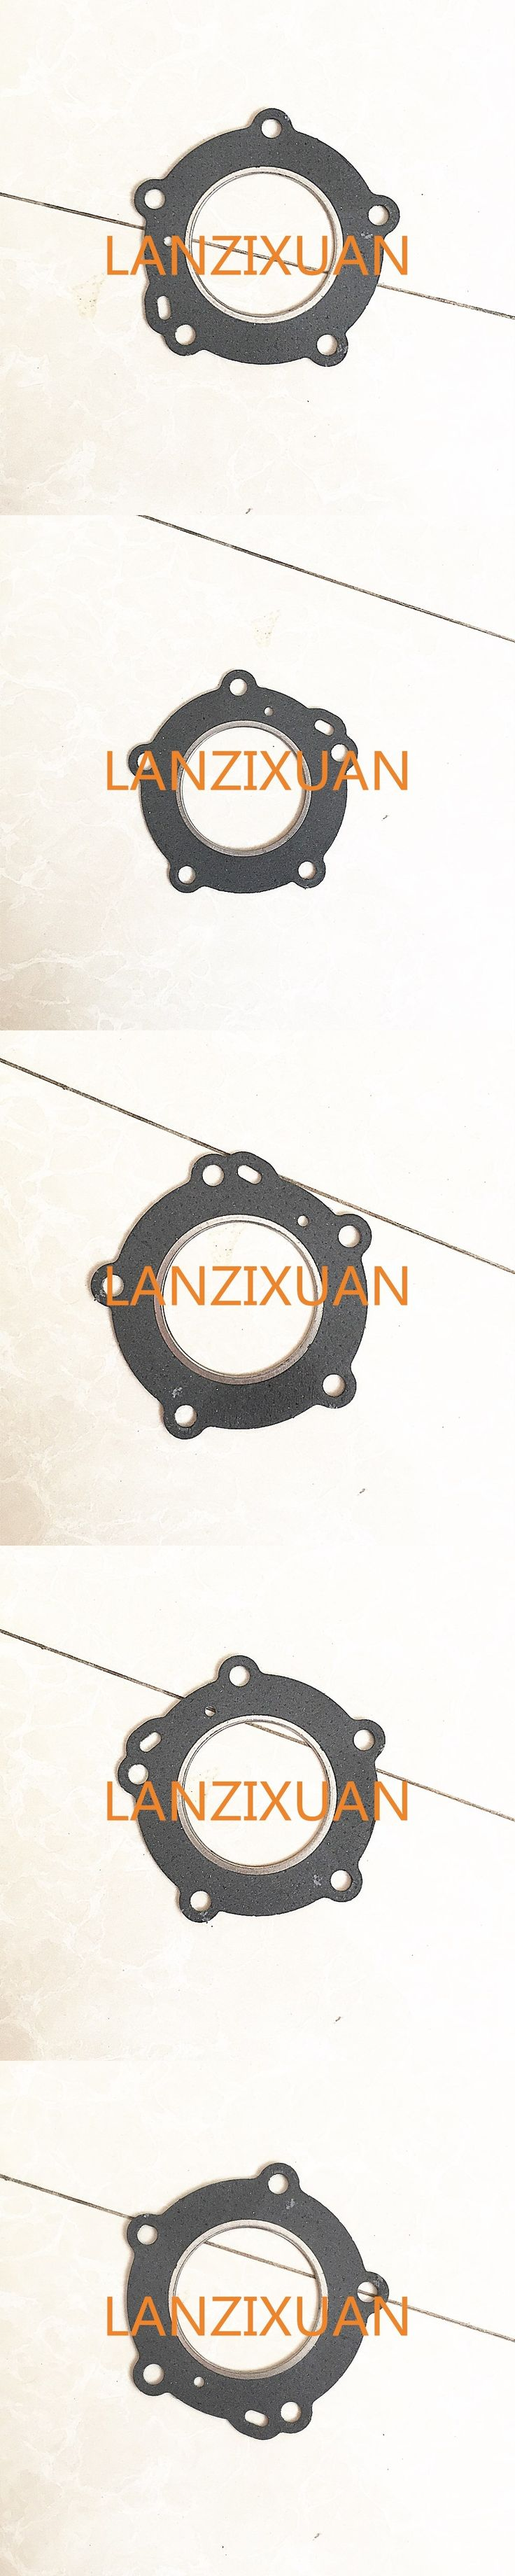 Boat Motor T5-05000001 Cylinder Head Gasket for Parsun 2-Stroke T4 T5 T5.8 Outboard Engine